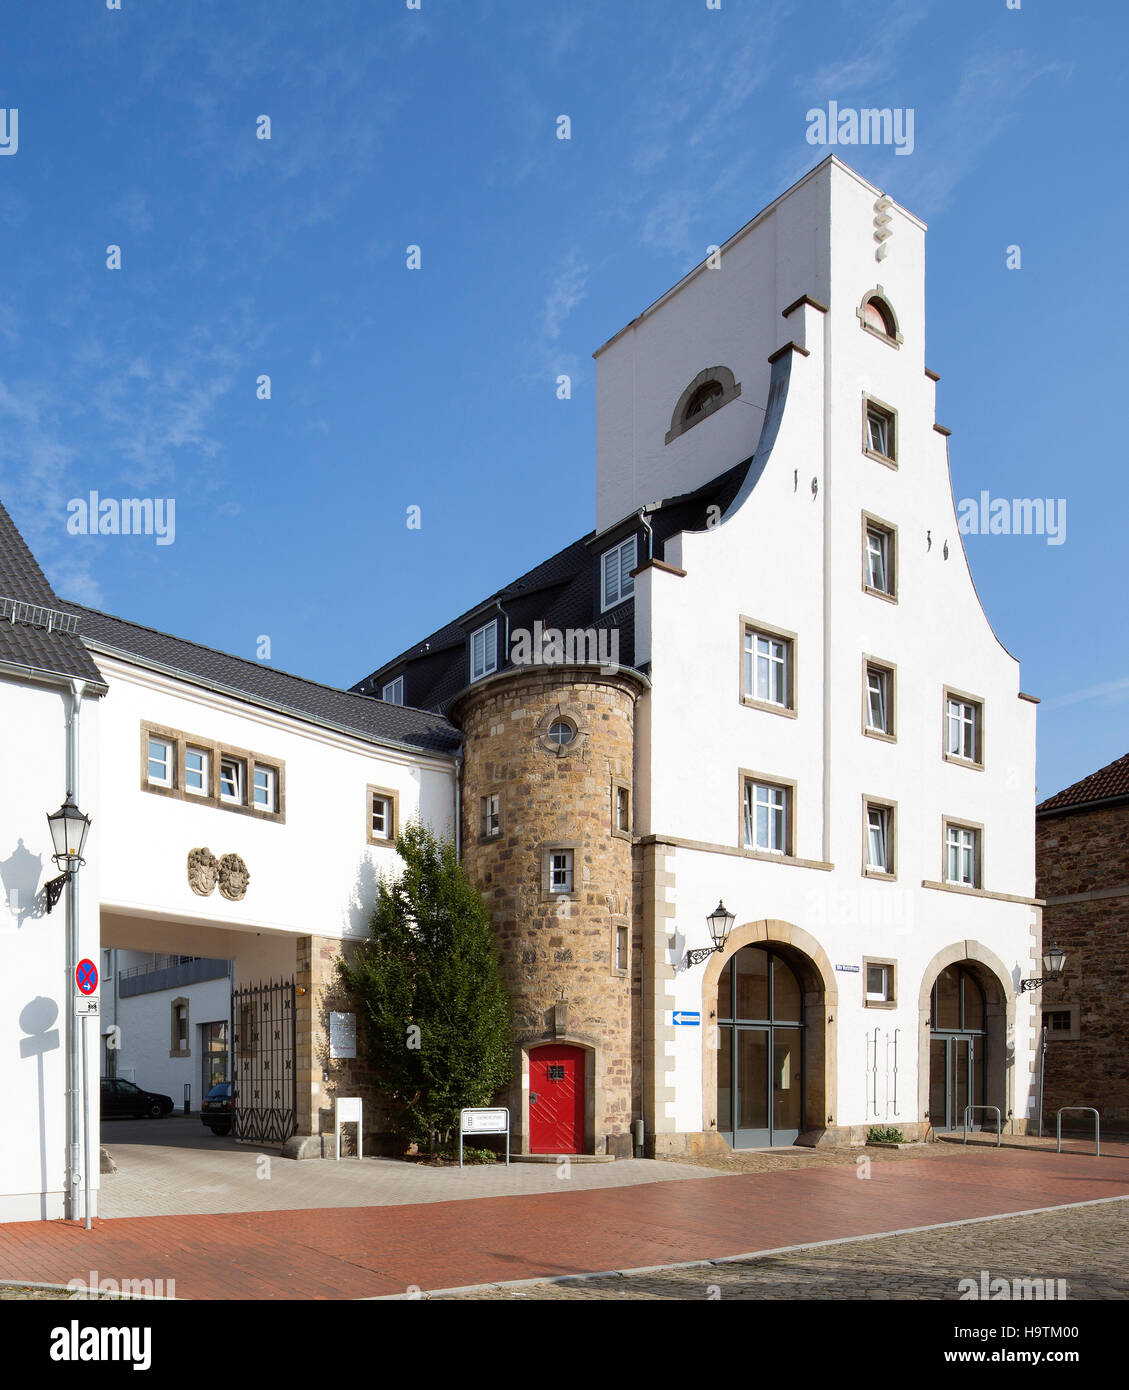 Residential buildings, former fire station, Hamelin, Lower Saxony, Germany - Stock Image